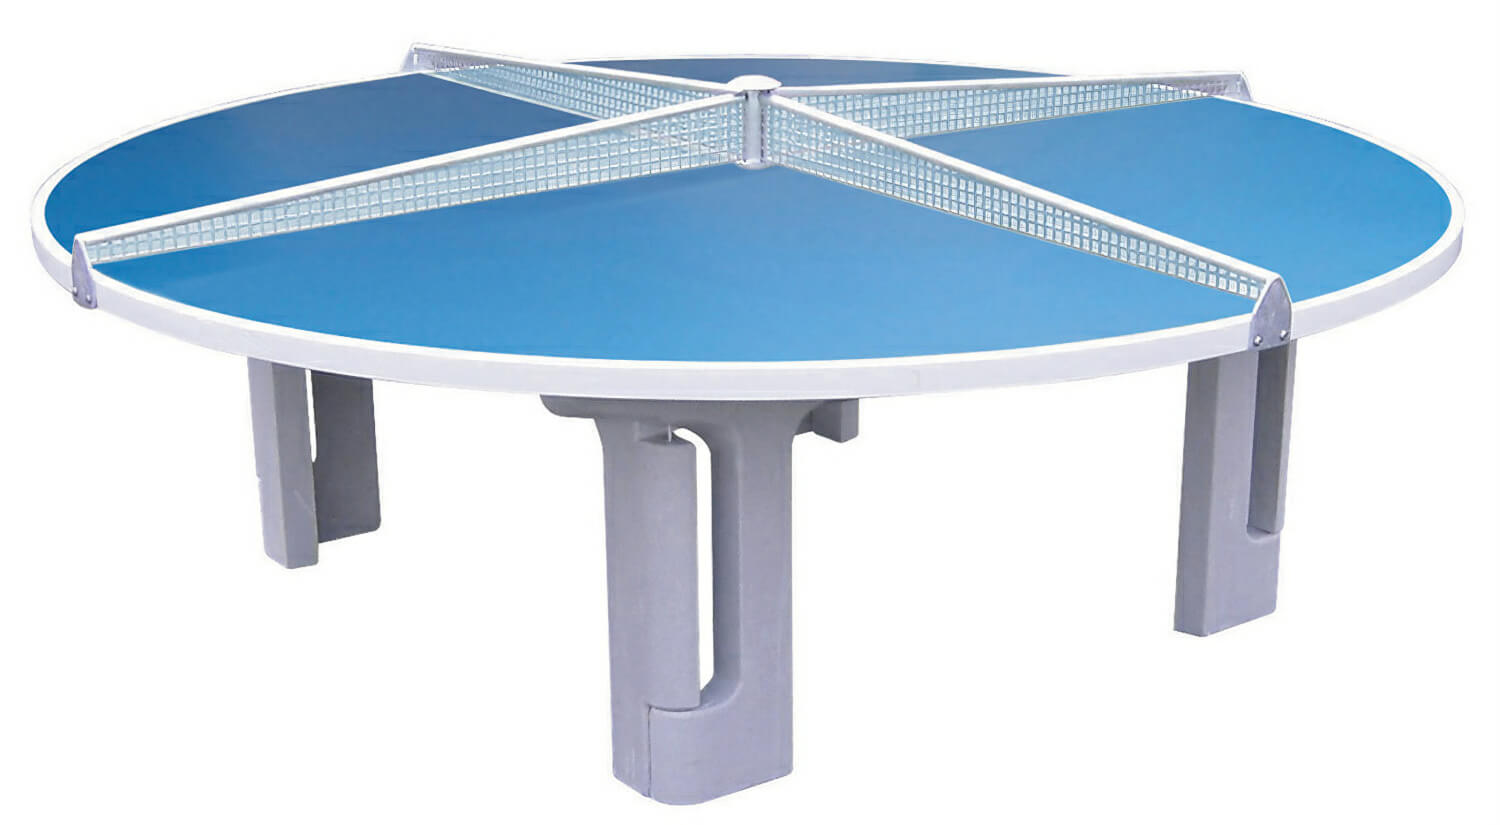 Butterfly R2000 Polymer Concrete Table Tennis Liberty Games